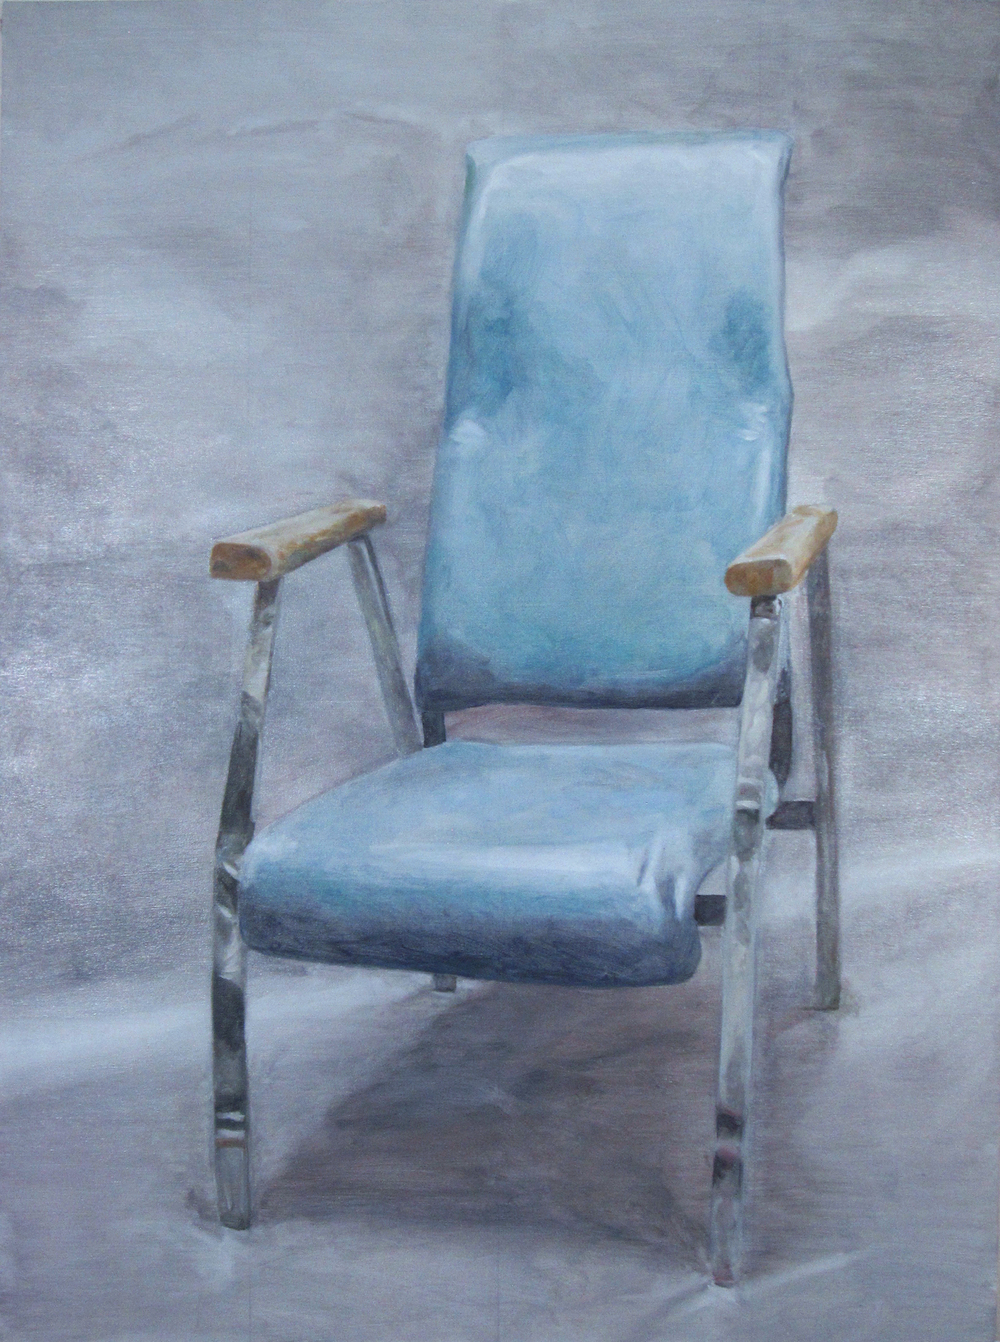 prop hospital chiar no. 1 2014 oil on canvas 40 x 30 in.